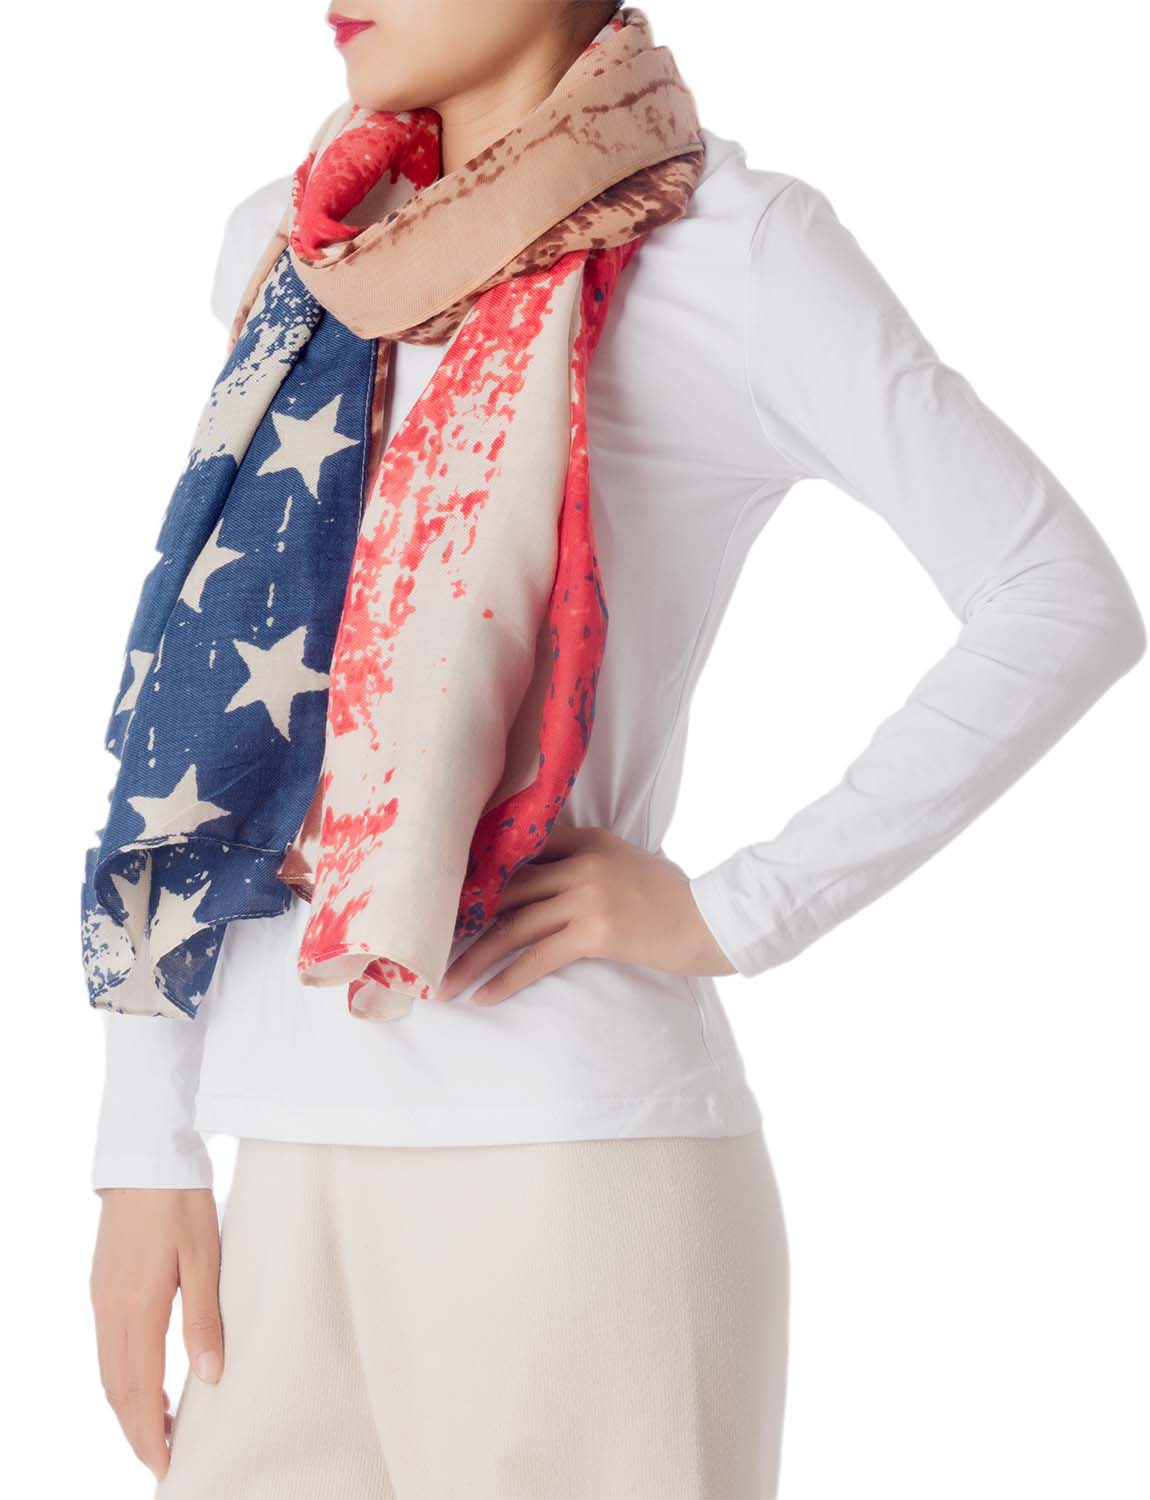 Women's Cotton Blended Tie-Dyed American Flag Oversized Long Fashion Scarf, Size: One Size, Navy